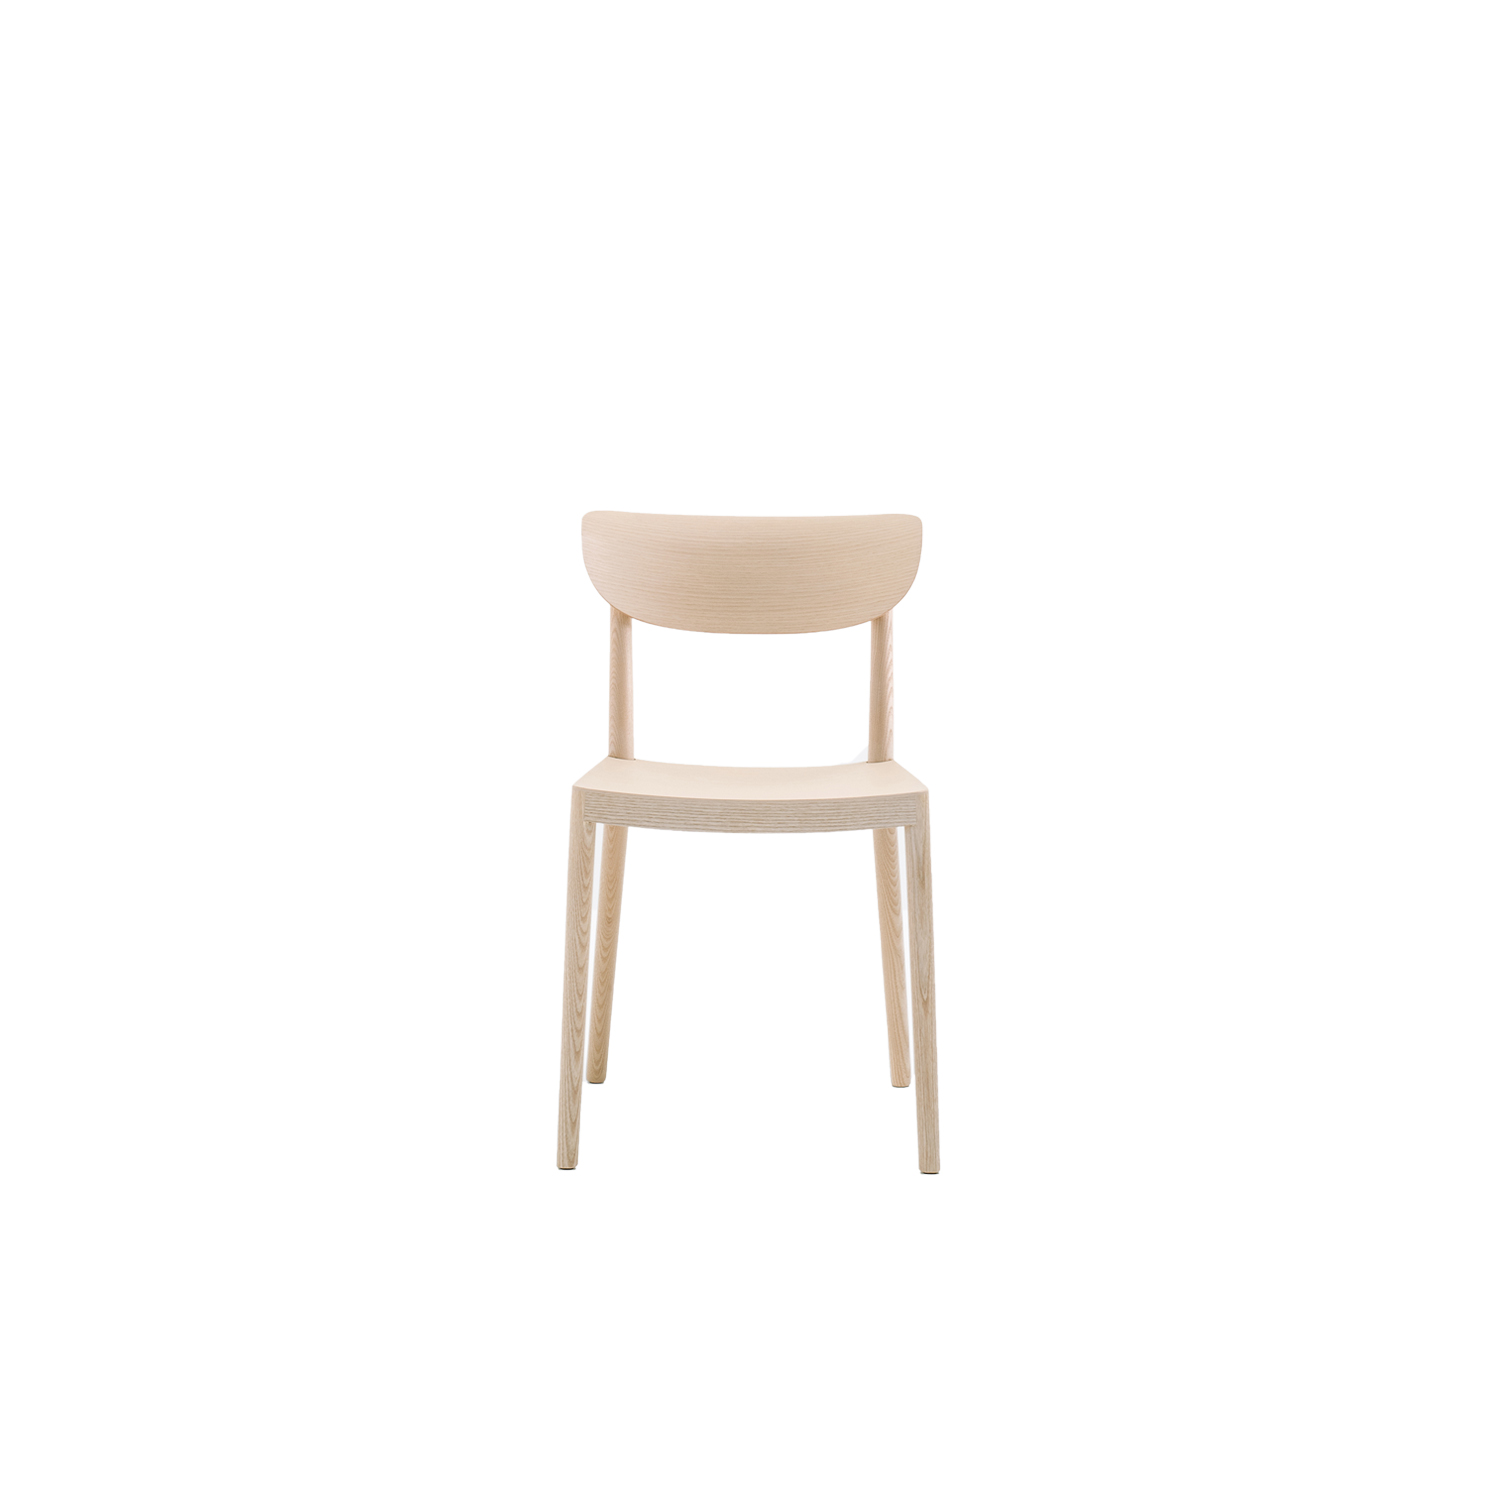 Tivoli Wooden Chair - Tivoli recalls the traditional wooden chairs, maintaining comfort and inspiring conviviality. Solid ash wood chairs with three-dimensional plywood back. | Matter of Stuff